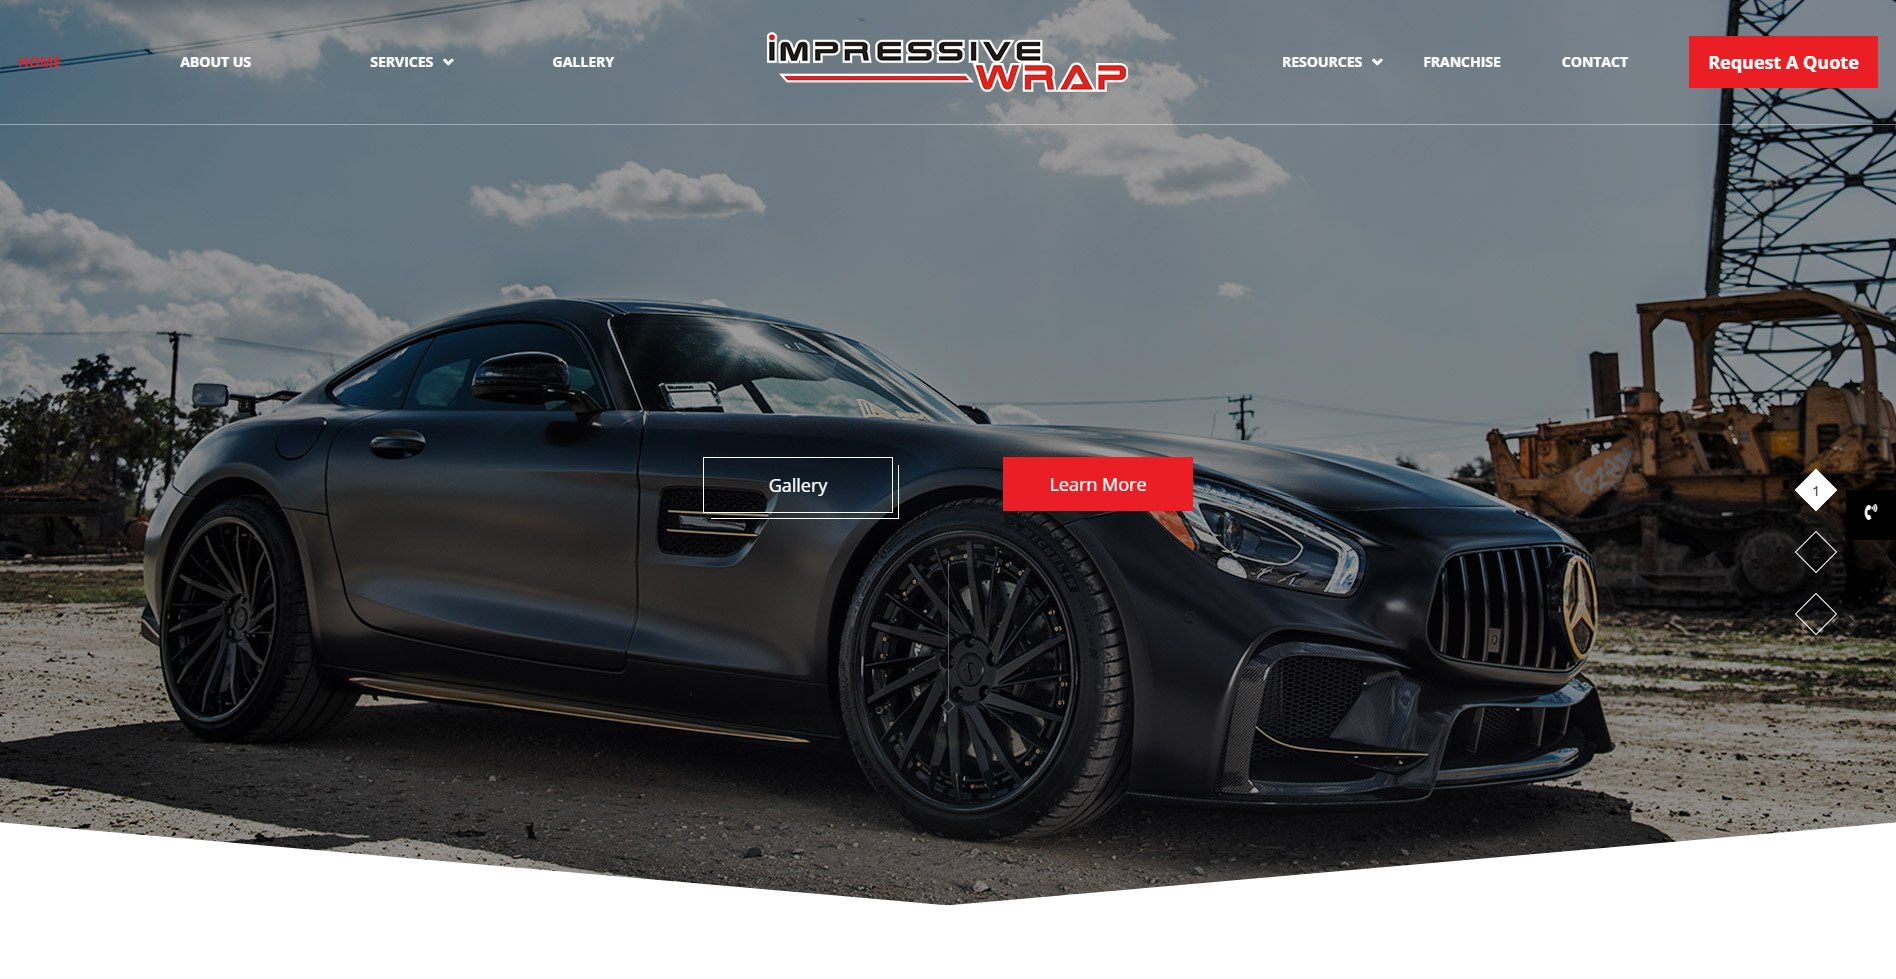 Impressive Wrap Website